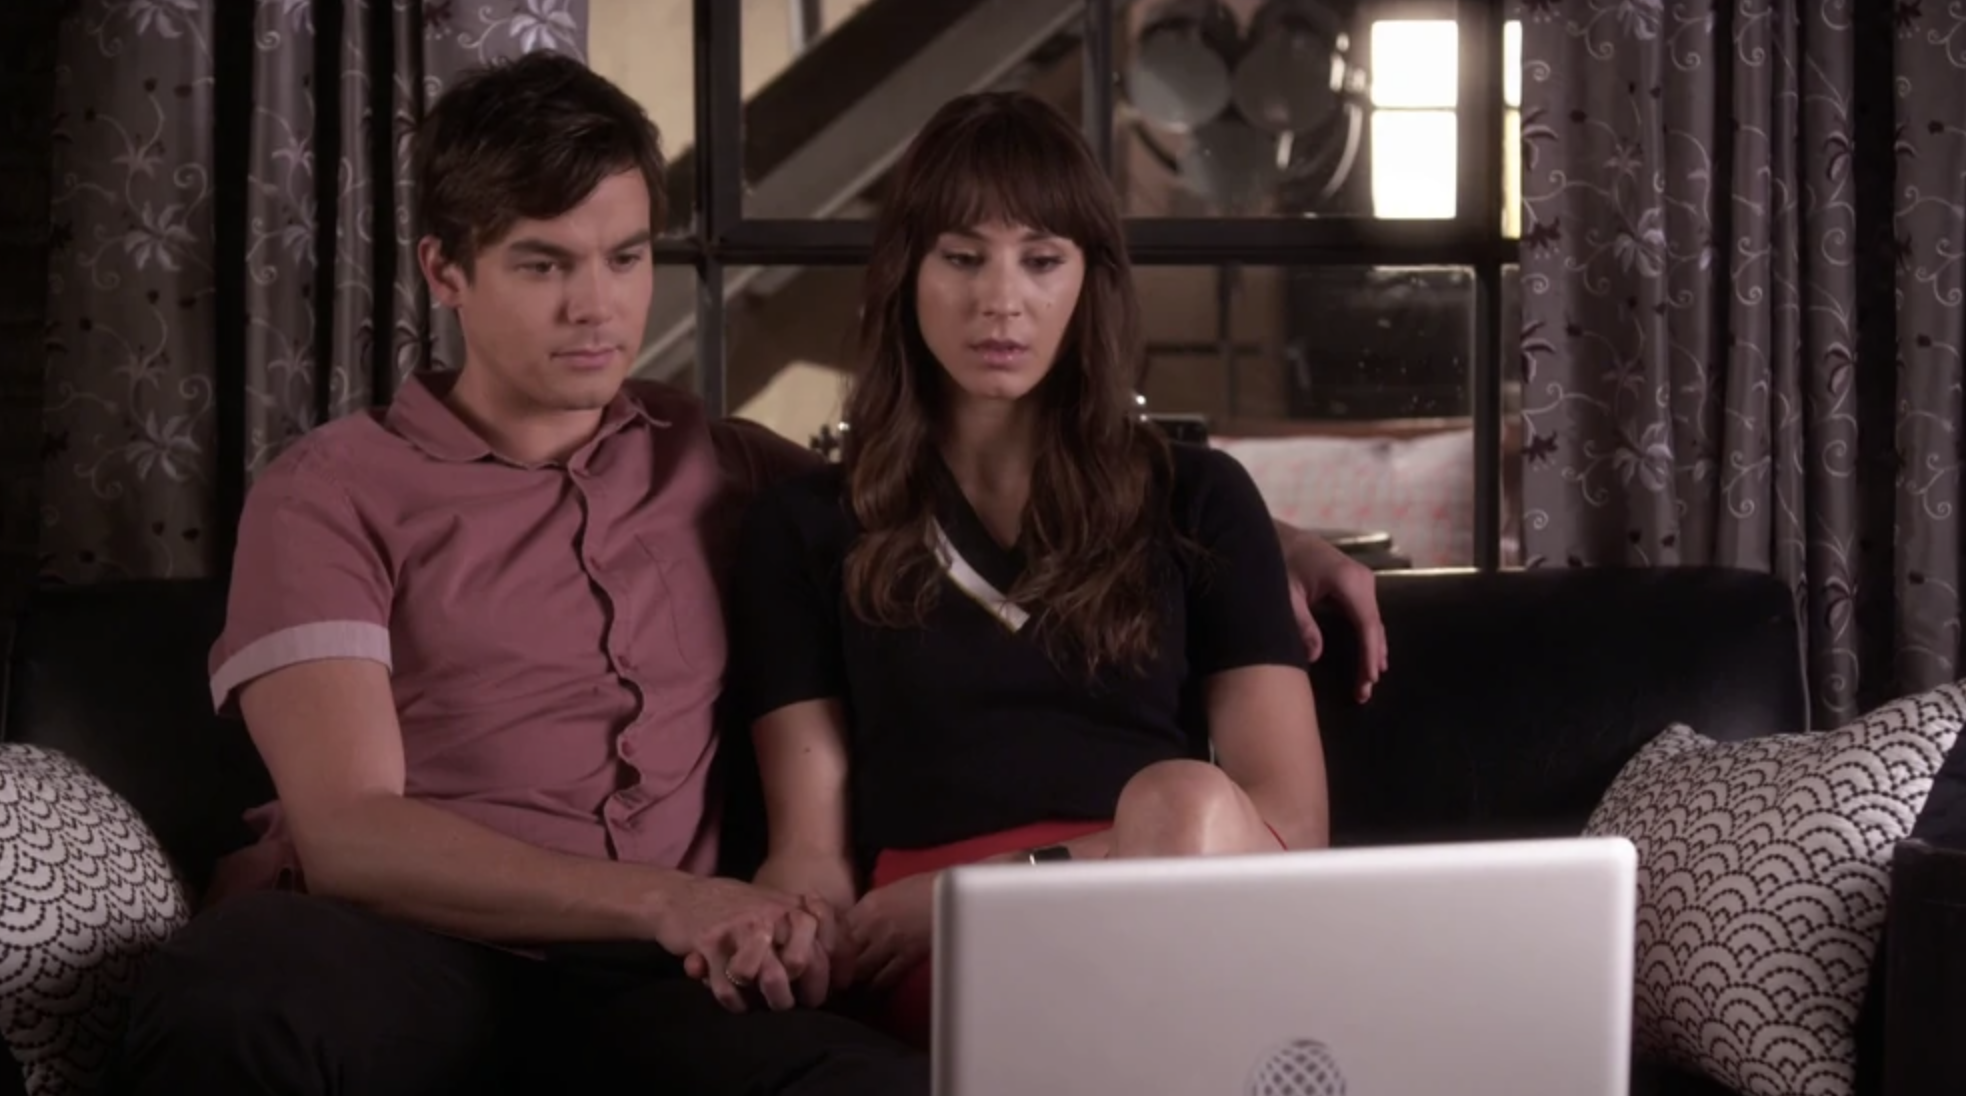 Caleb and Spencer sitting on a couch, holding hands, and looking at a laptop